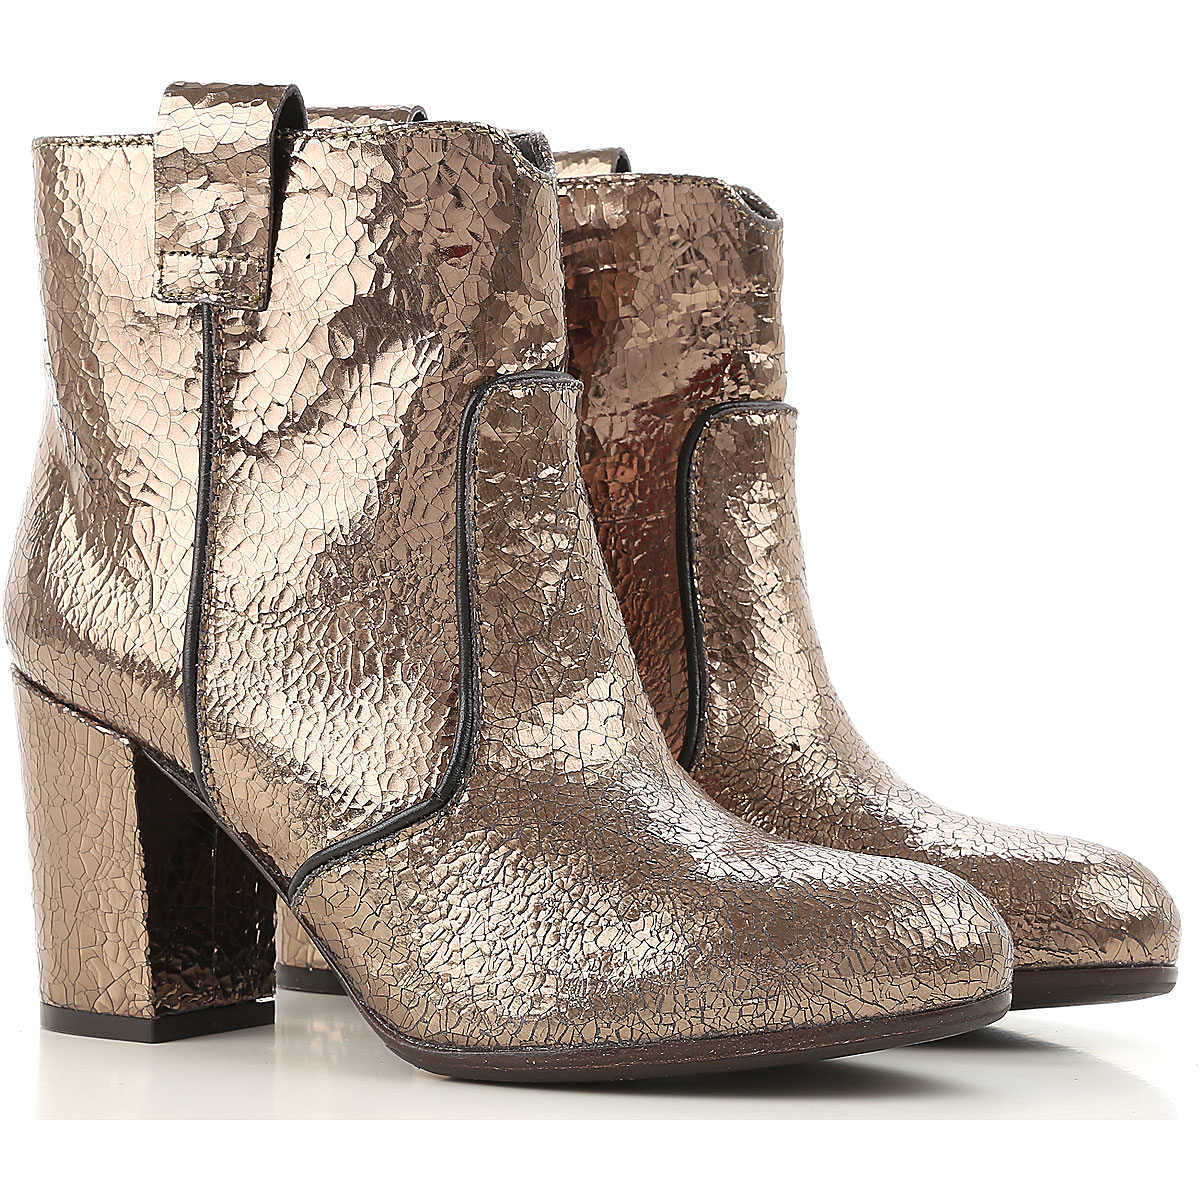 Paris Texas Boots for Women 3 4 4.5 6 Booties On Sale in Outlet UK - GOOFASH